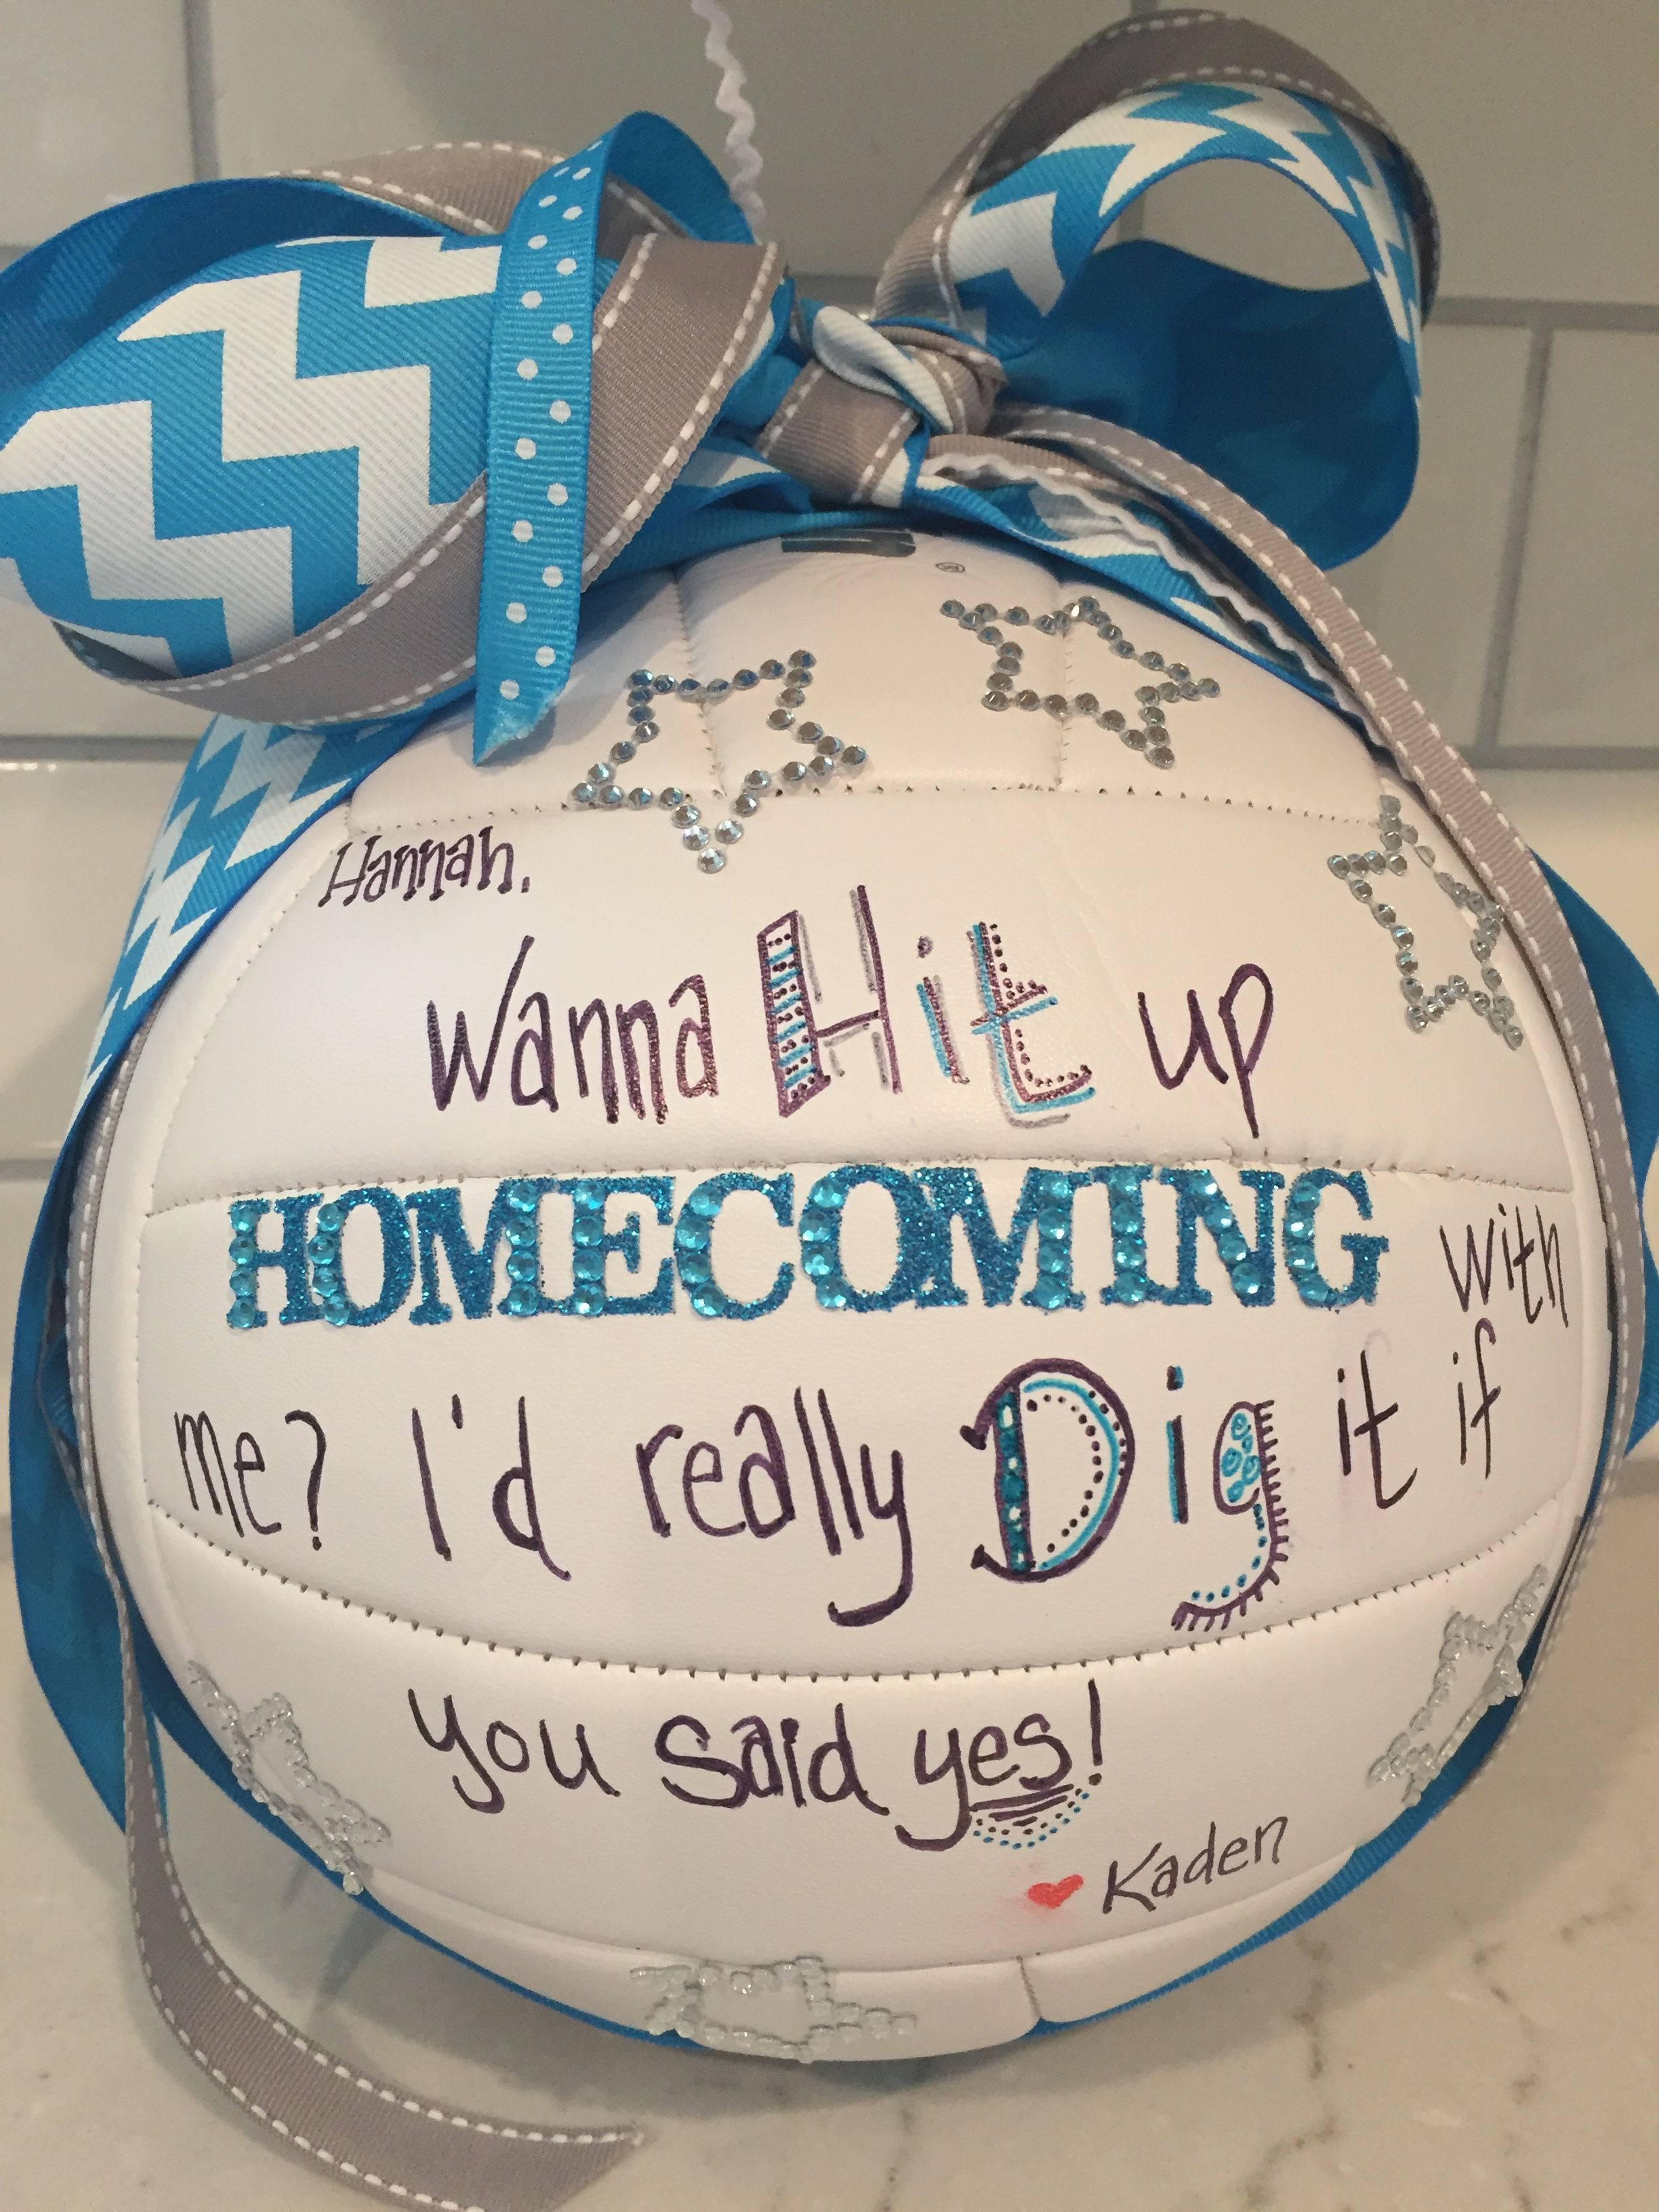 Homecoming Proposal With Volleyball Theme Homecoming Proposal Cute Homecoming Proposals Cute Prom Proposals